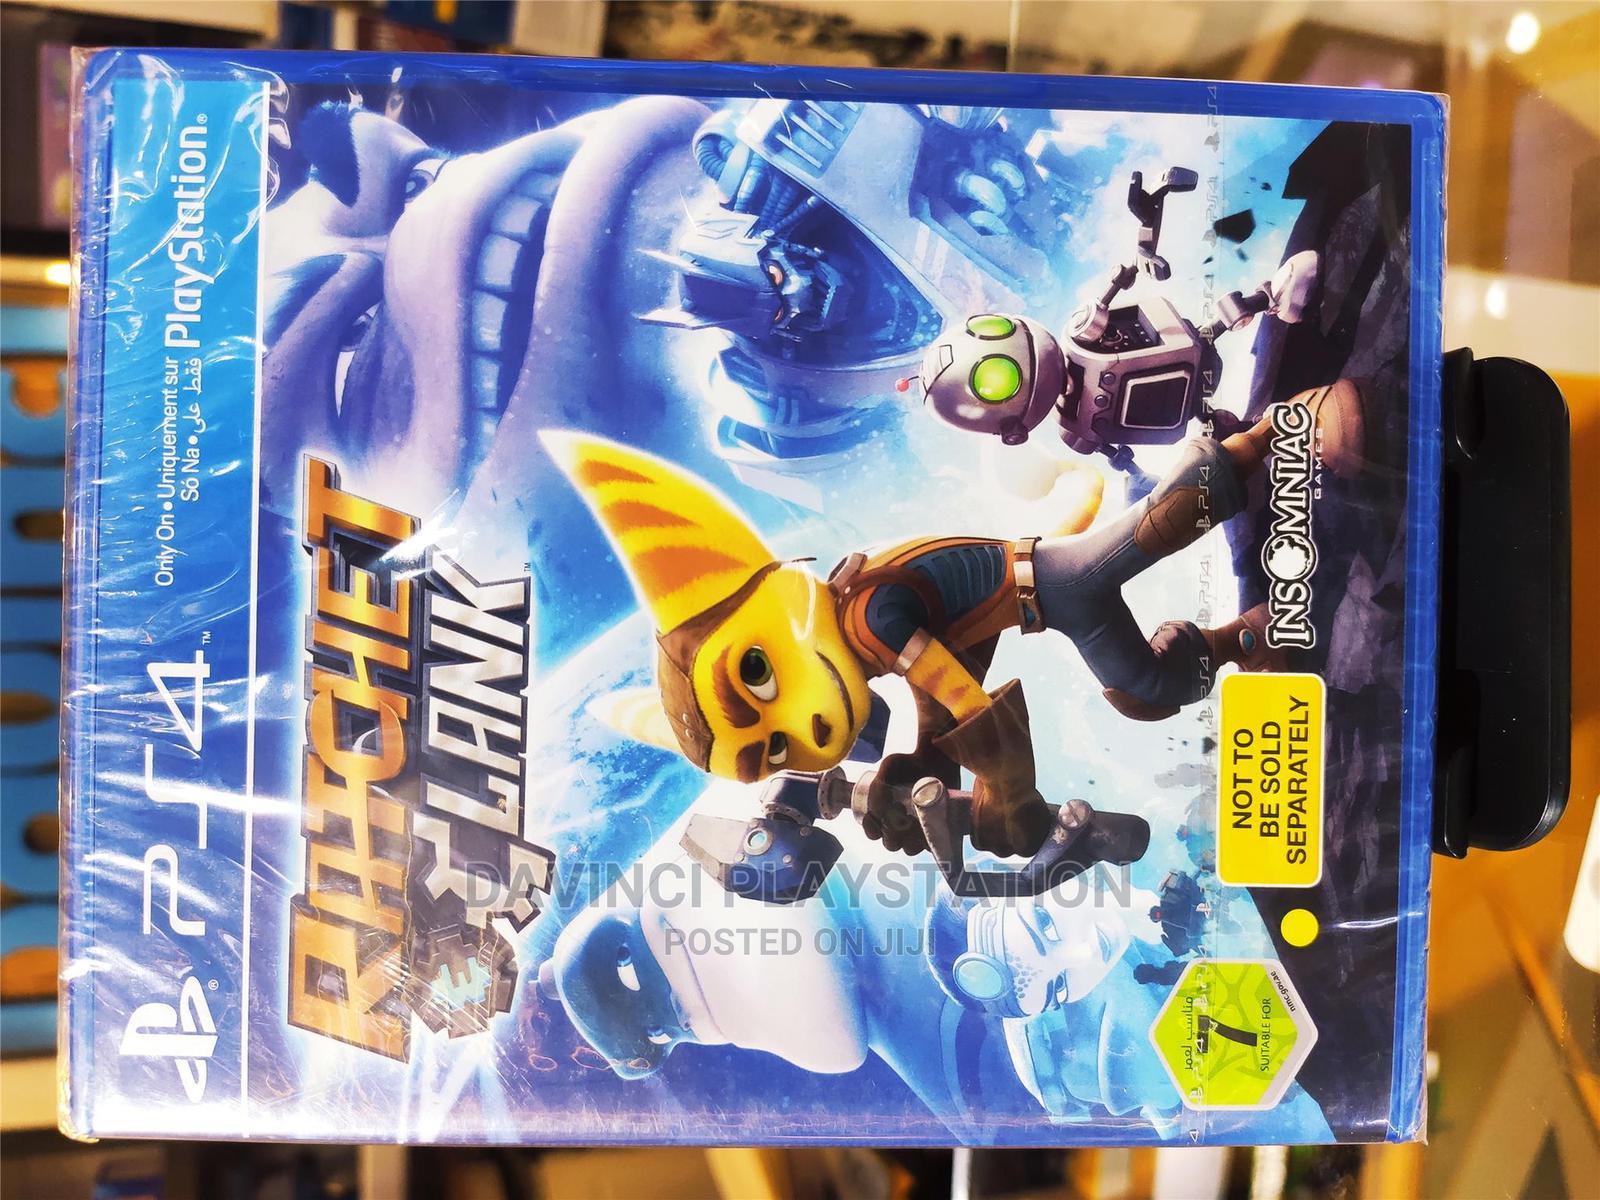 Ratchet and Clank   Video Games for sale in Bole, Addis Ababa, Ethiopia